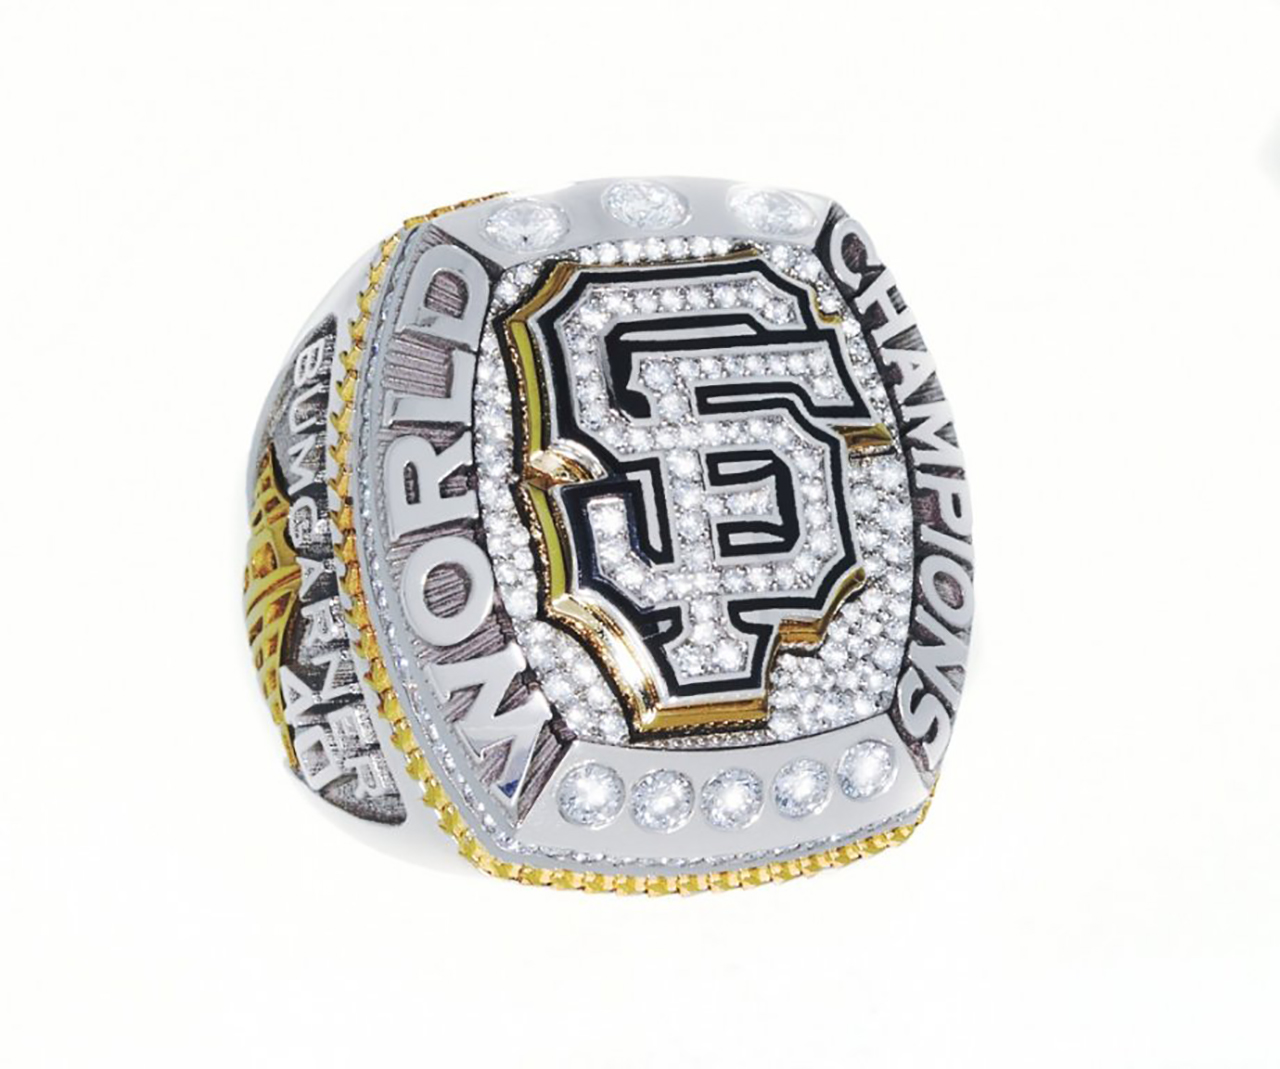 Giants WS ring